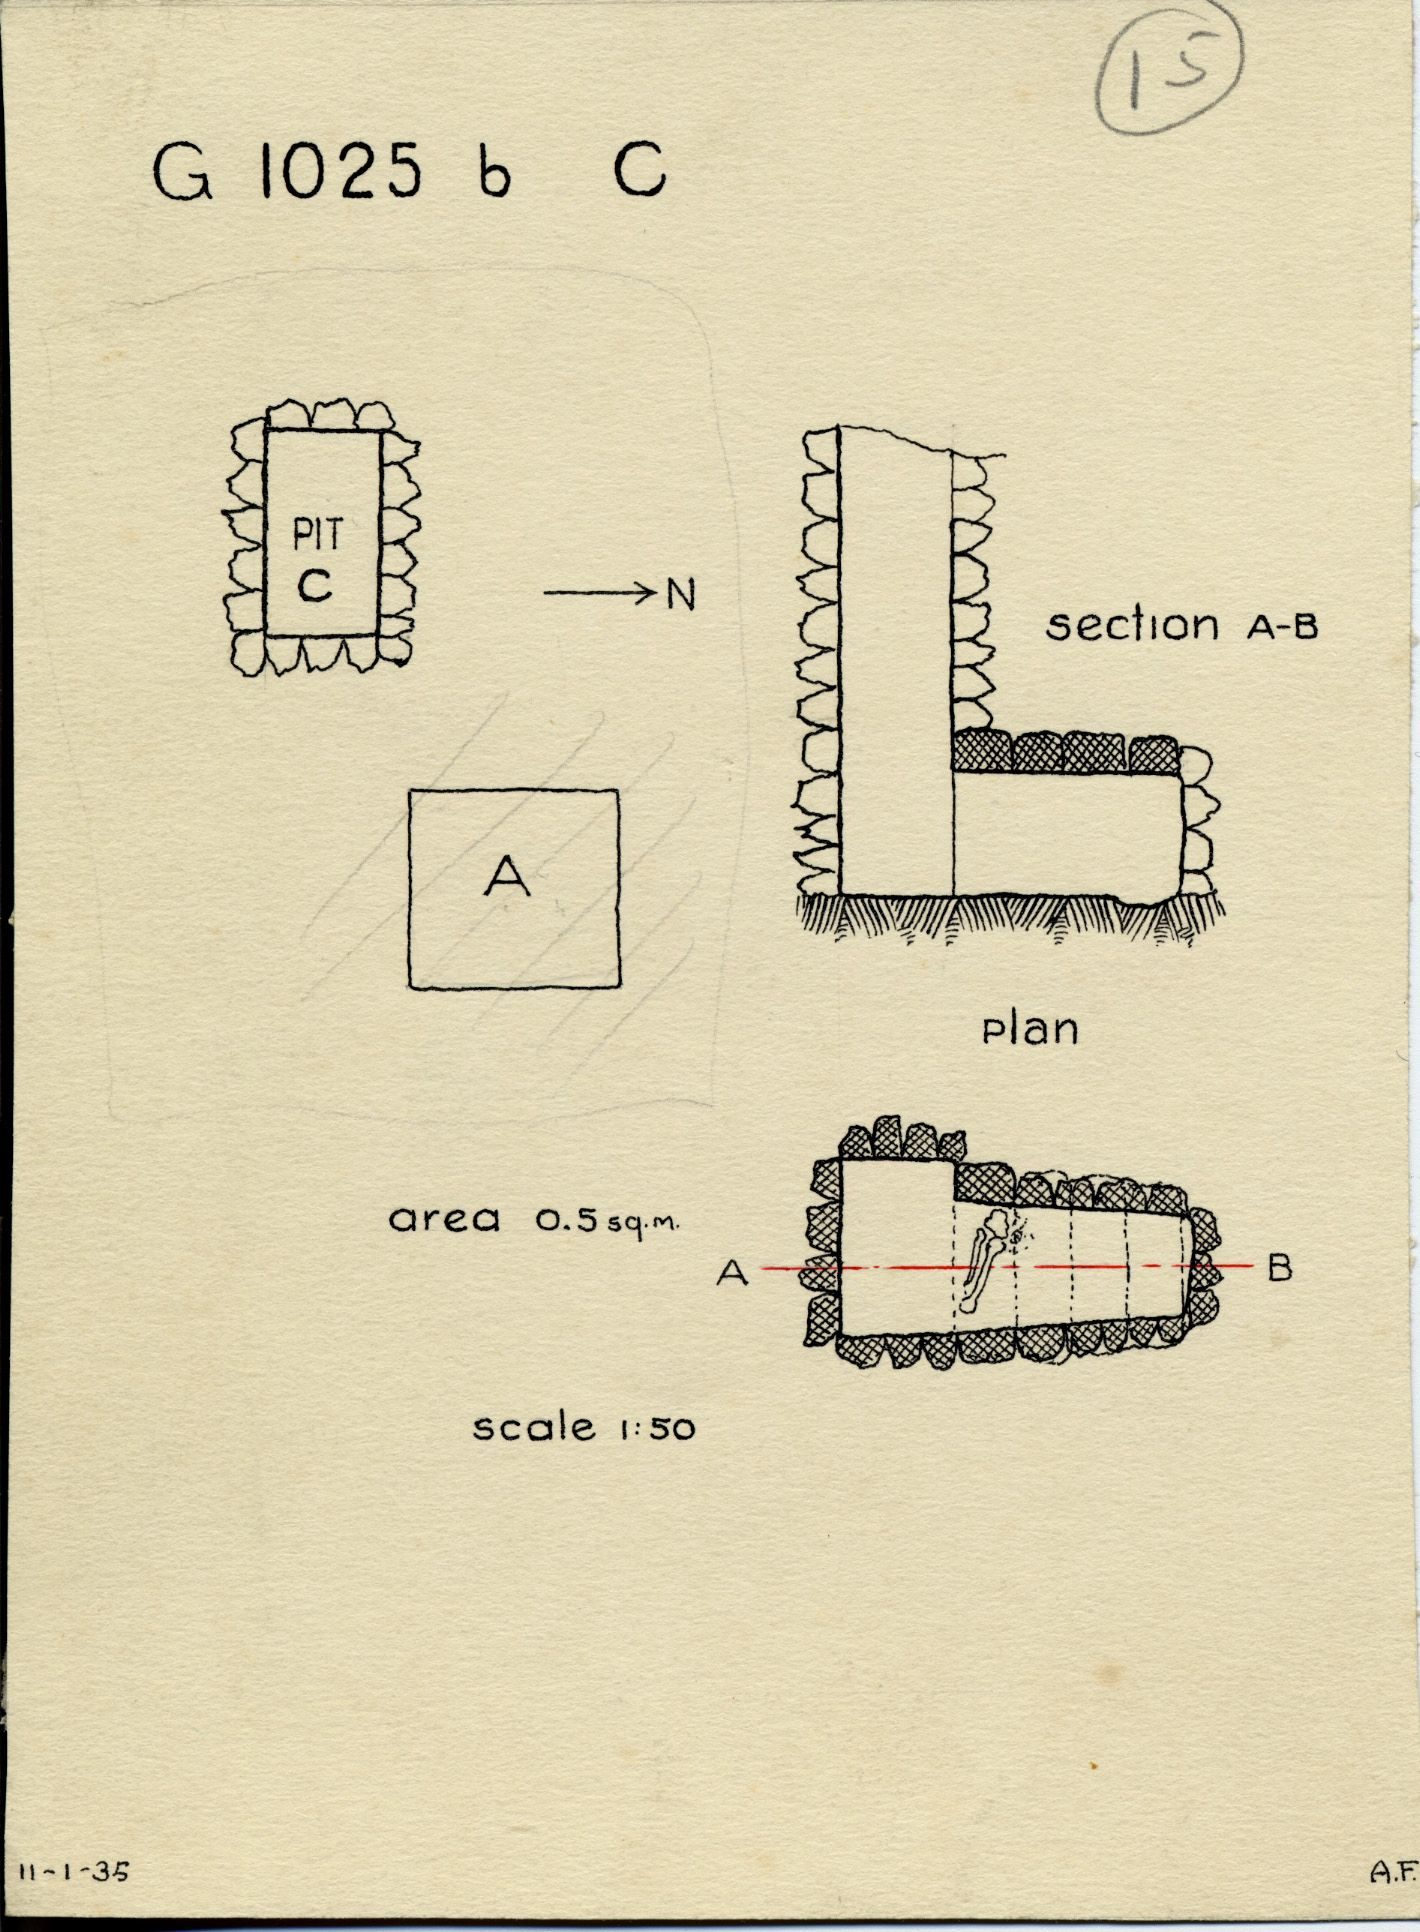 Maps and plans: G 1025b, Shaft C